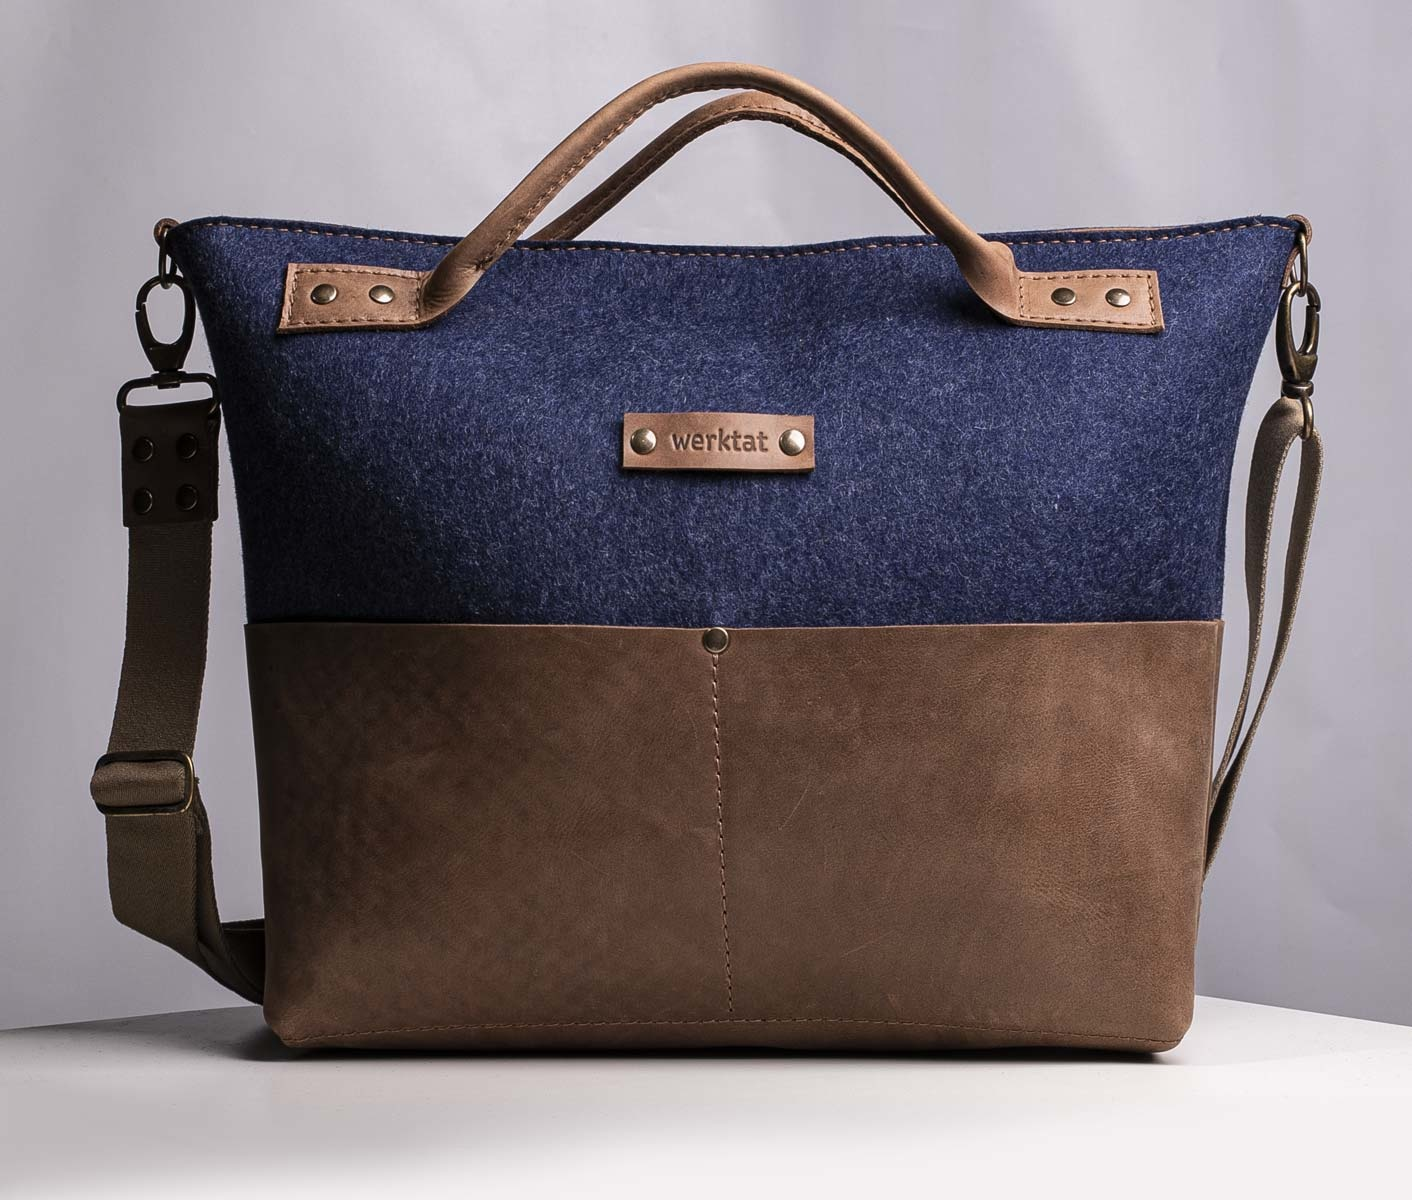 work satchel leather & felt, womens bag GROSSRAUMBUERO